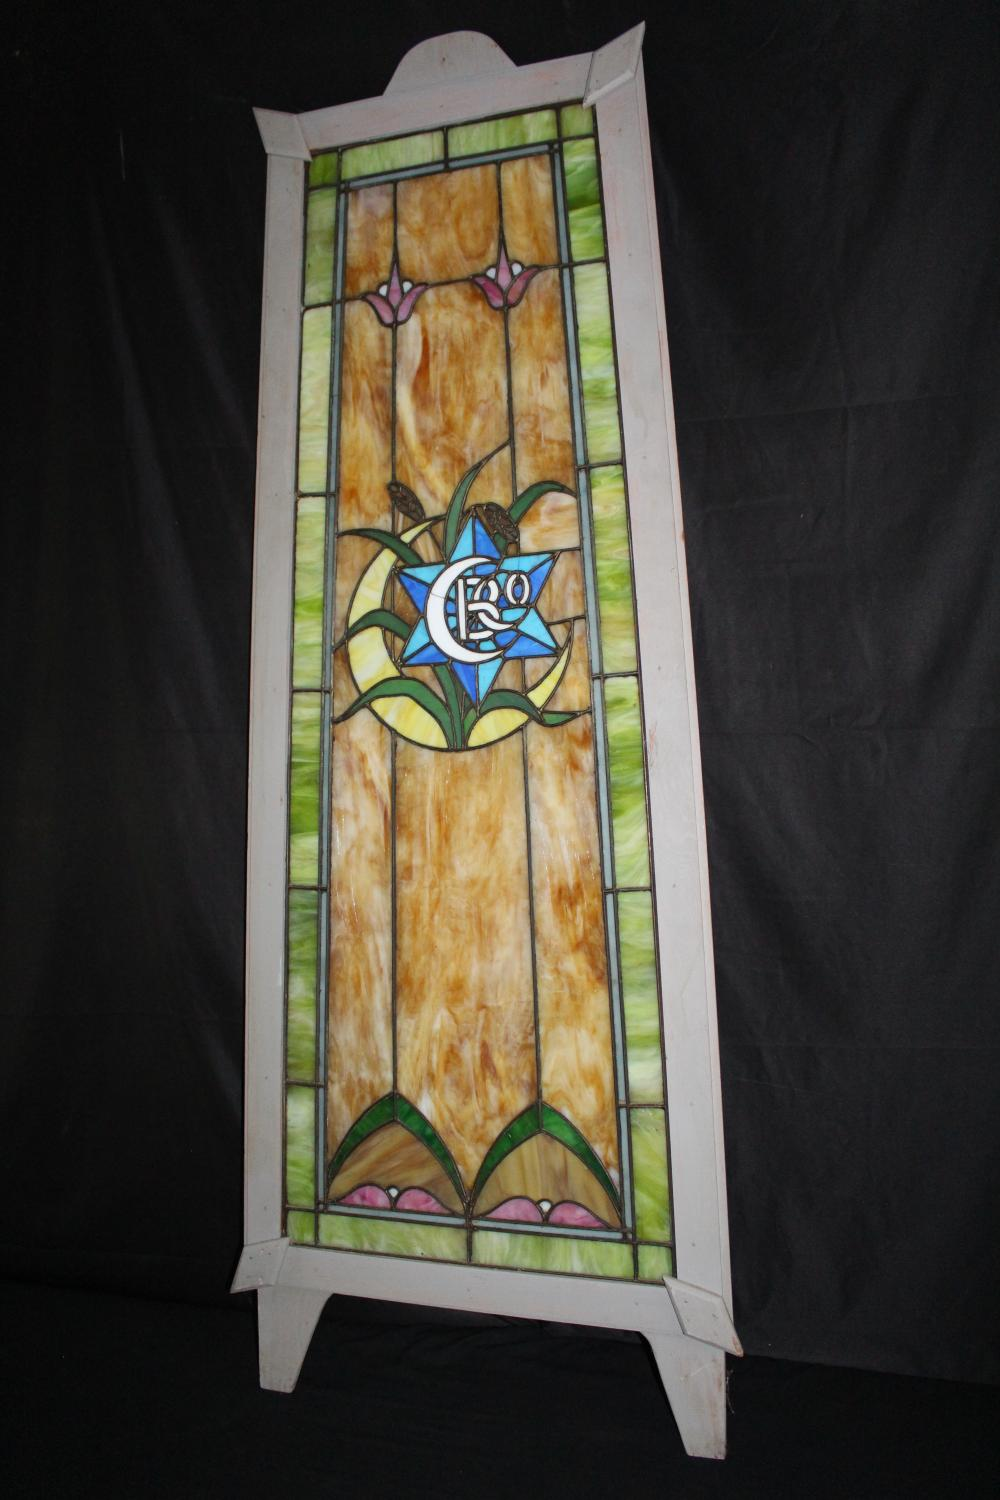 CREAM CITY BREWING CO BREWERY STAIN GLASS WINDOW